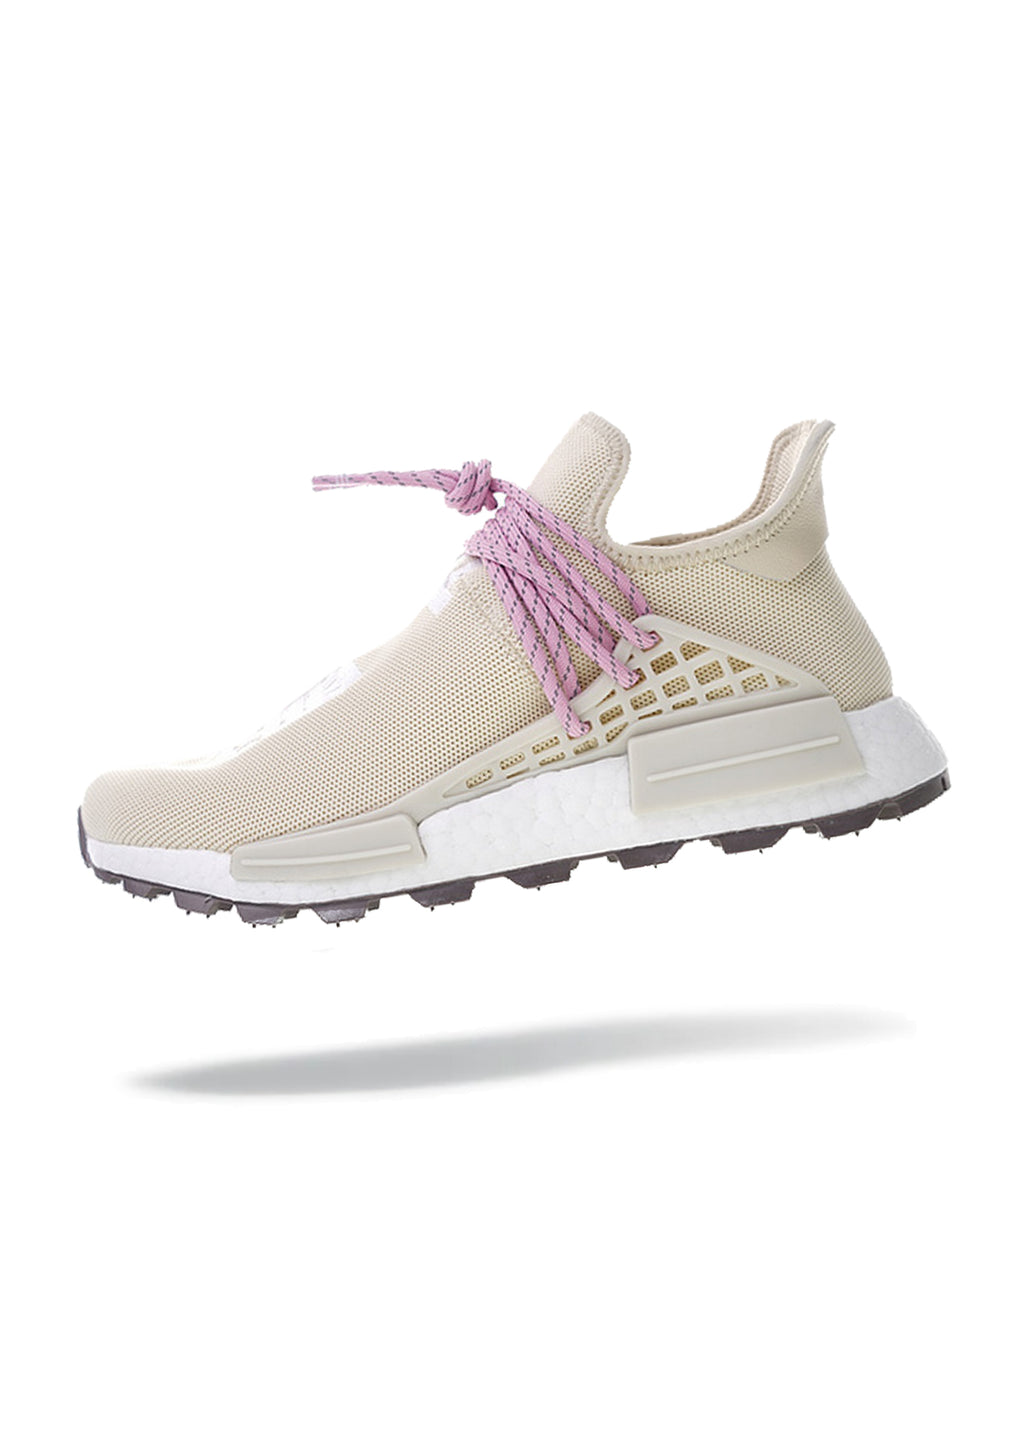 Adidas NMD HU Pharrell NERD Cream JAPAN EXCLU